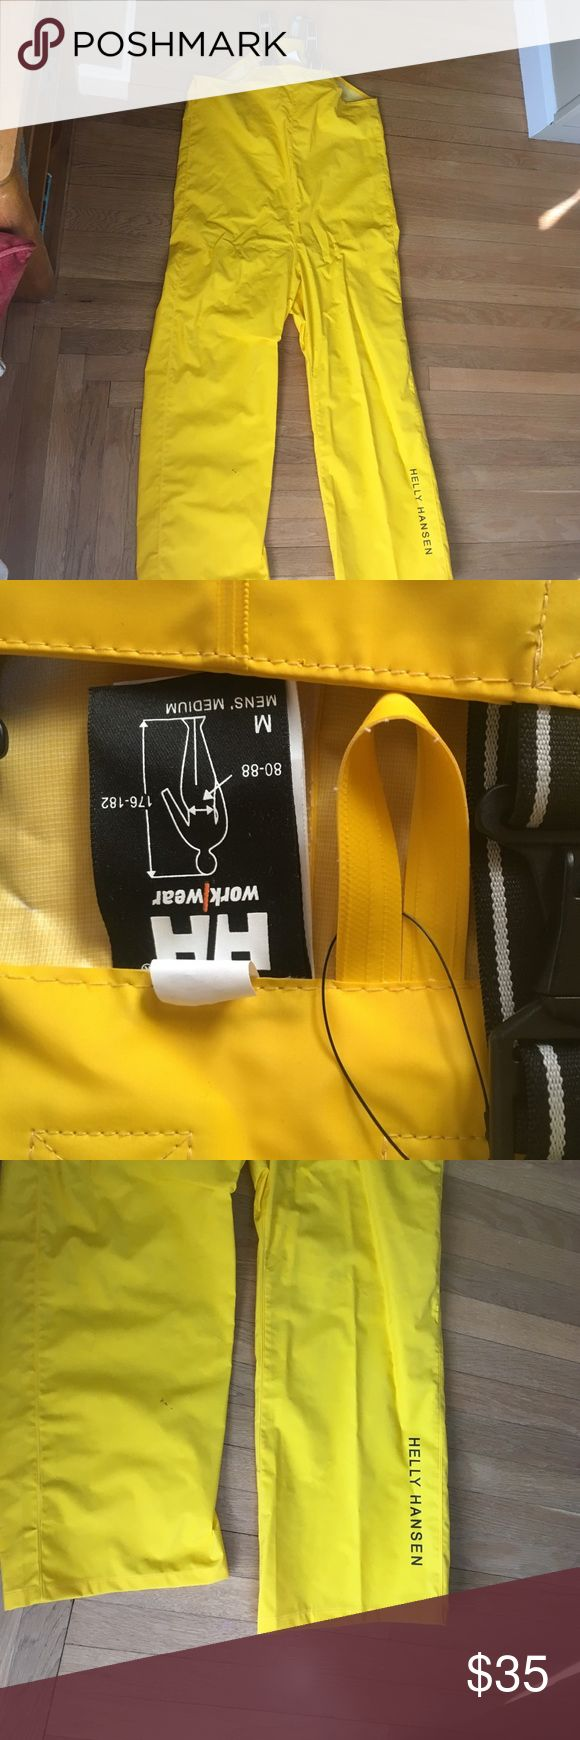 Helly Hansen waterproof overall work bib Suit made with 100%Polyvinyl chloride, with adjustable suspenders Helly Hansen Other